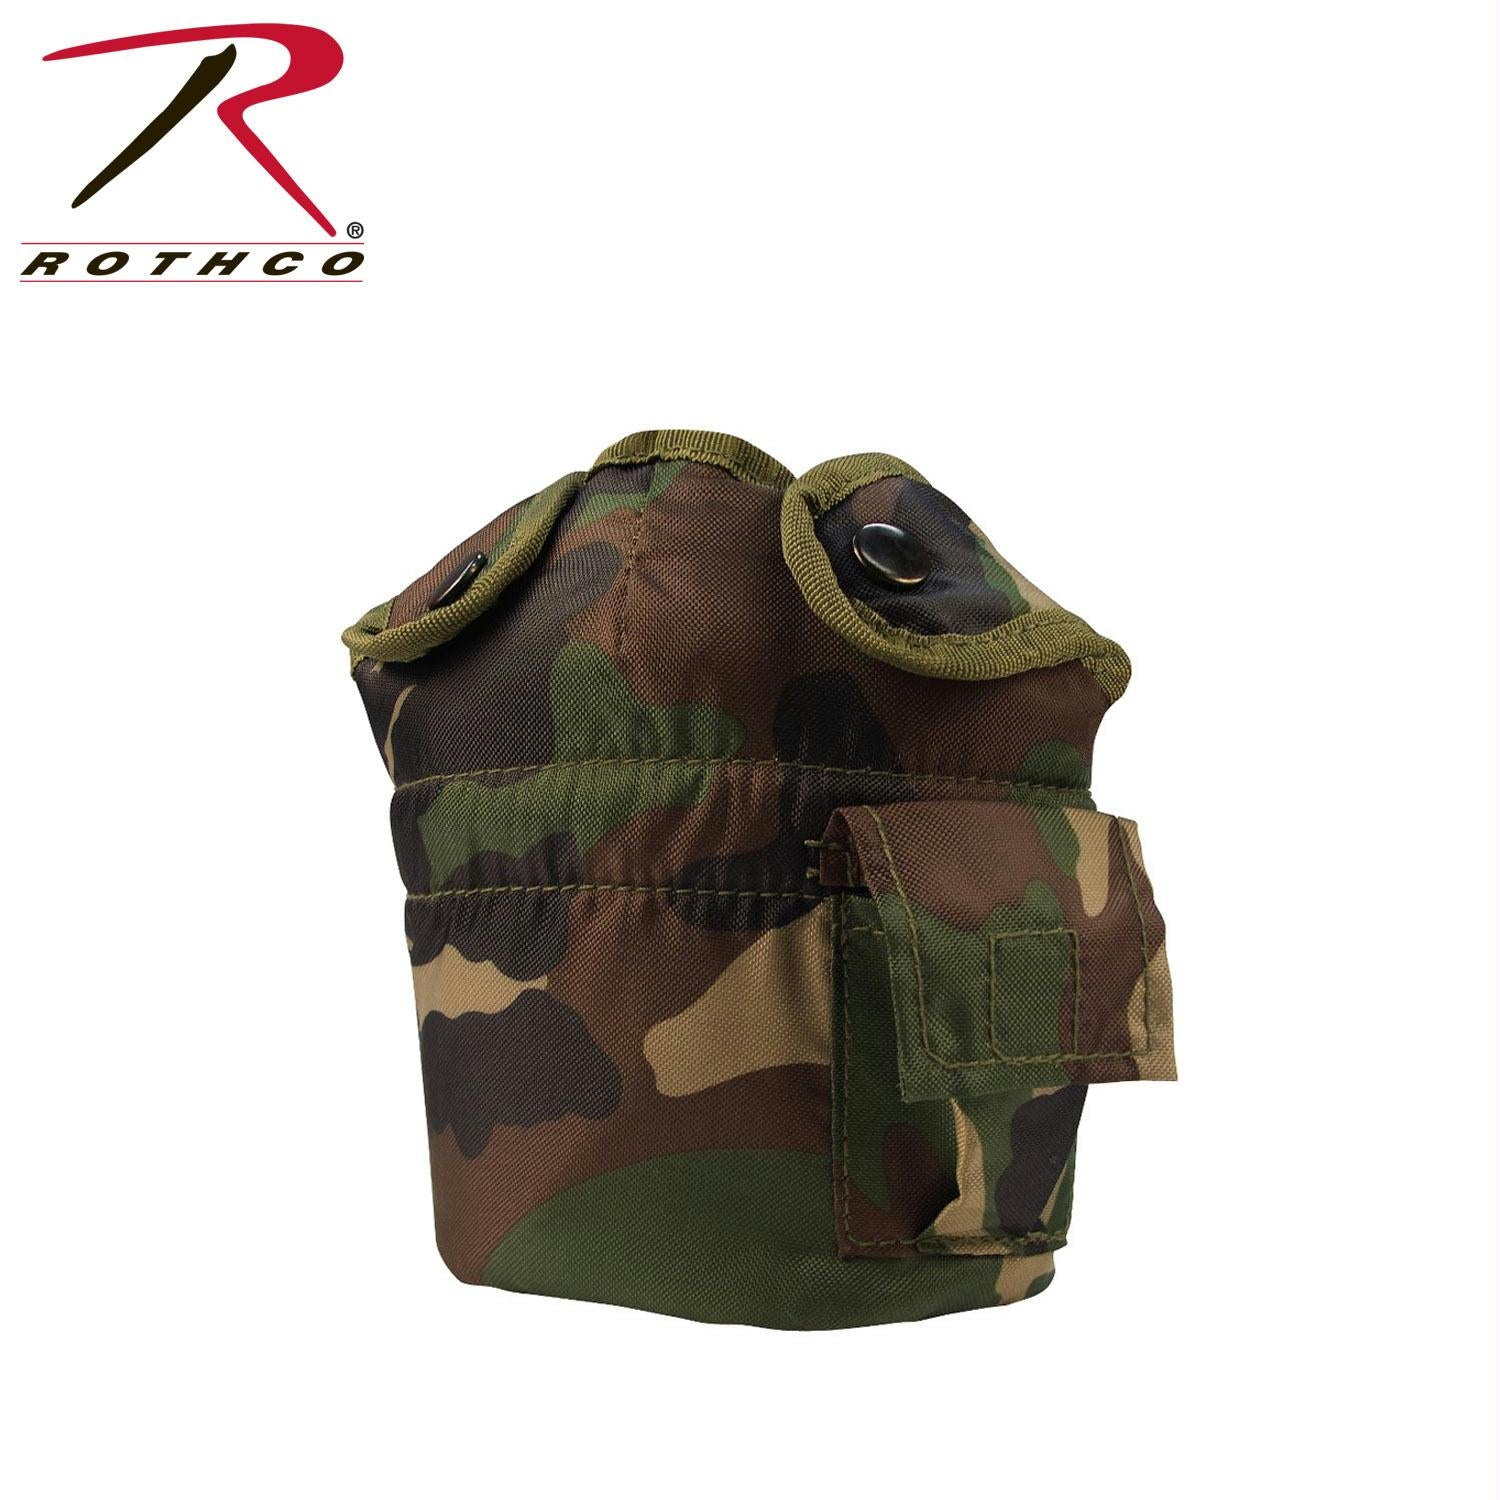 Rothco G.I. Style Canteen Cover - Woodland Camo